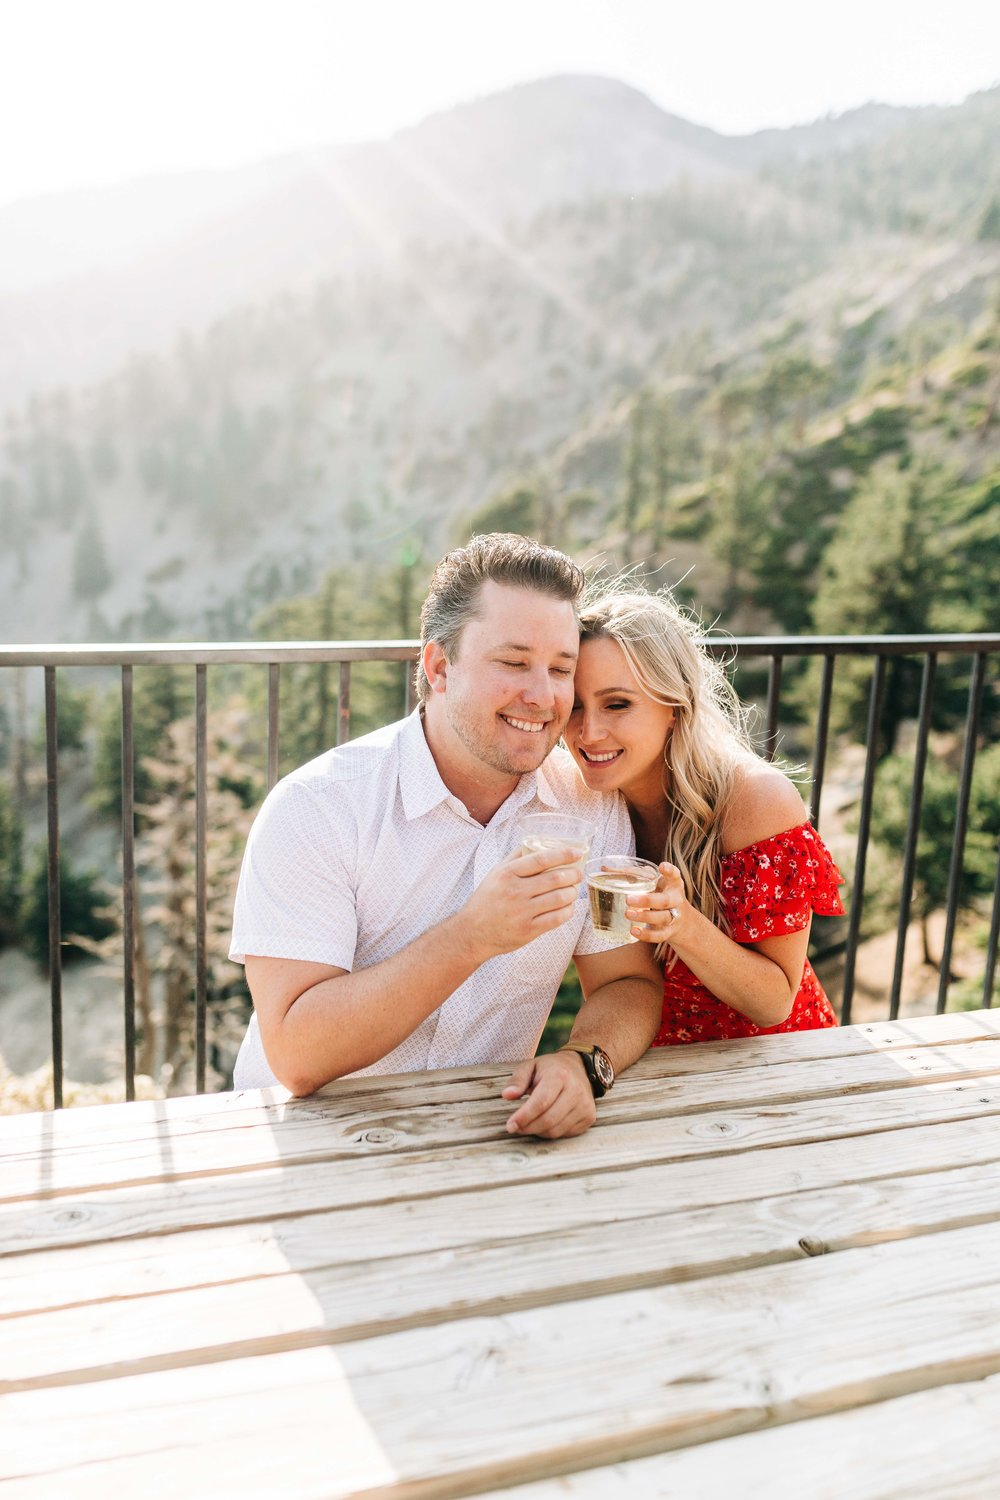 Rachael&Keith-Mt-Mount-Baldy-Engagement-Photos-Clarisse-Rae-Southern-California-Wedding-Photographer_16